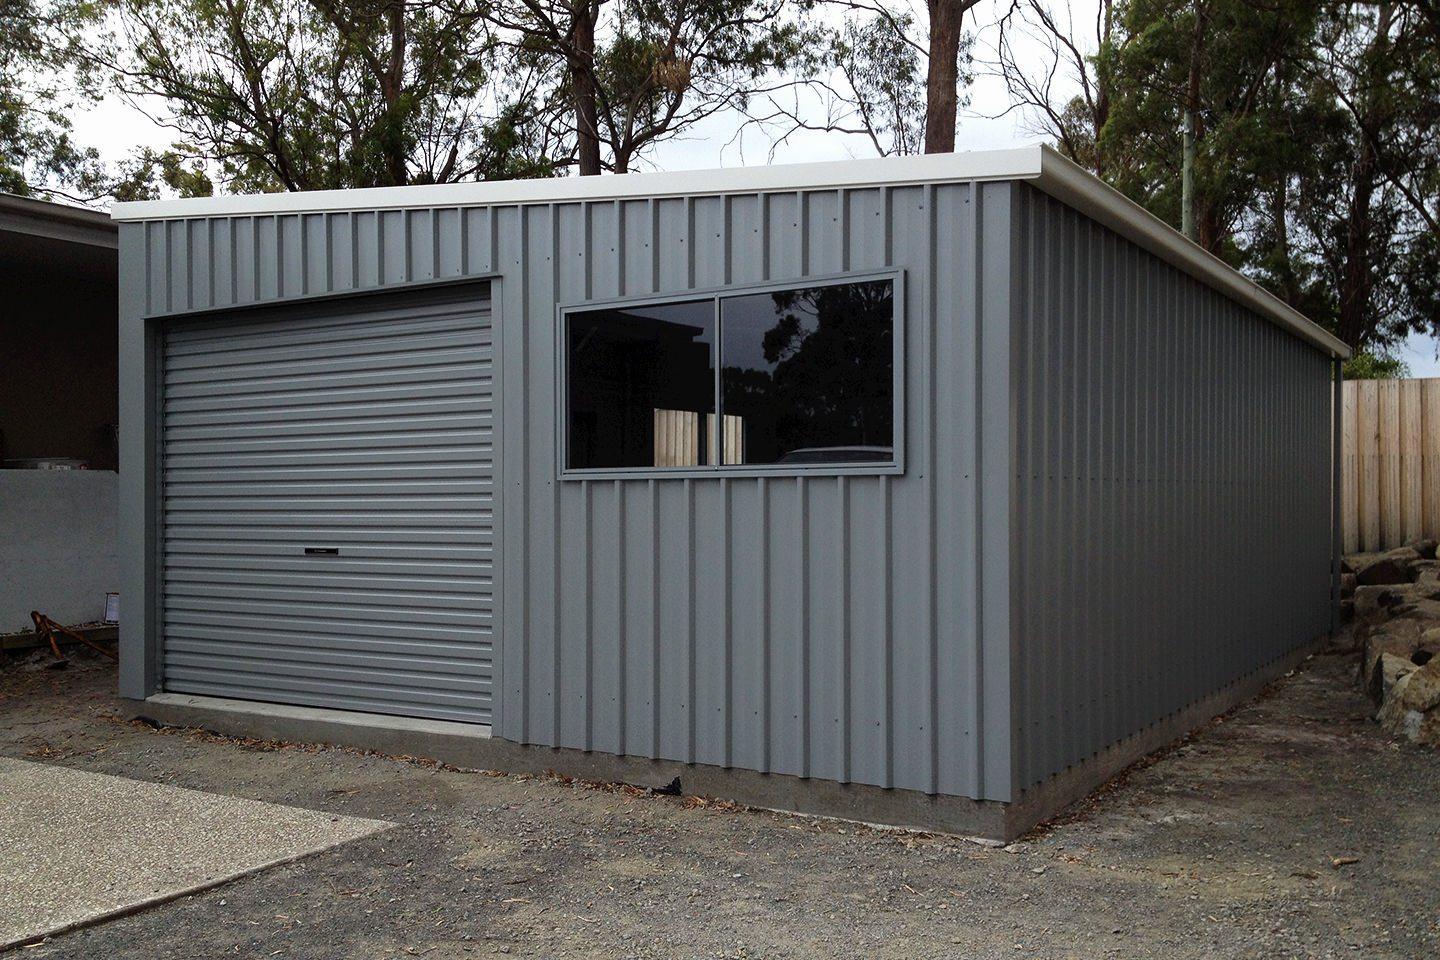 Garage Awning Extension Skillion Roof Sheds And Garages Ranbuild